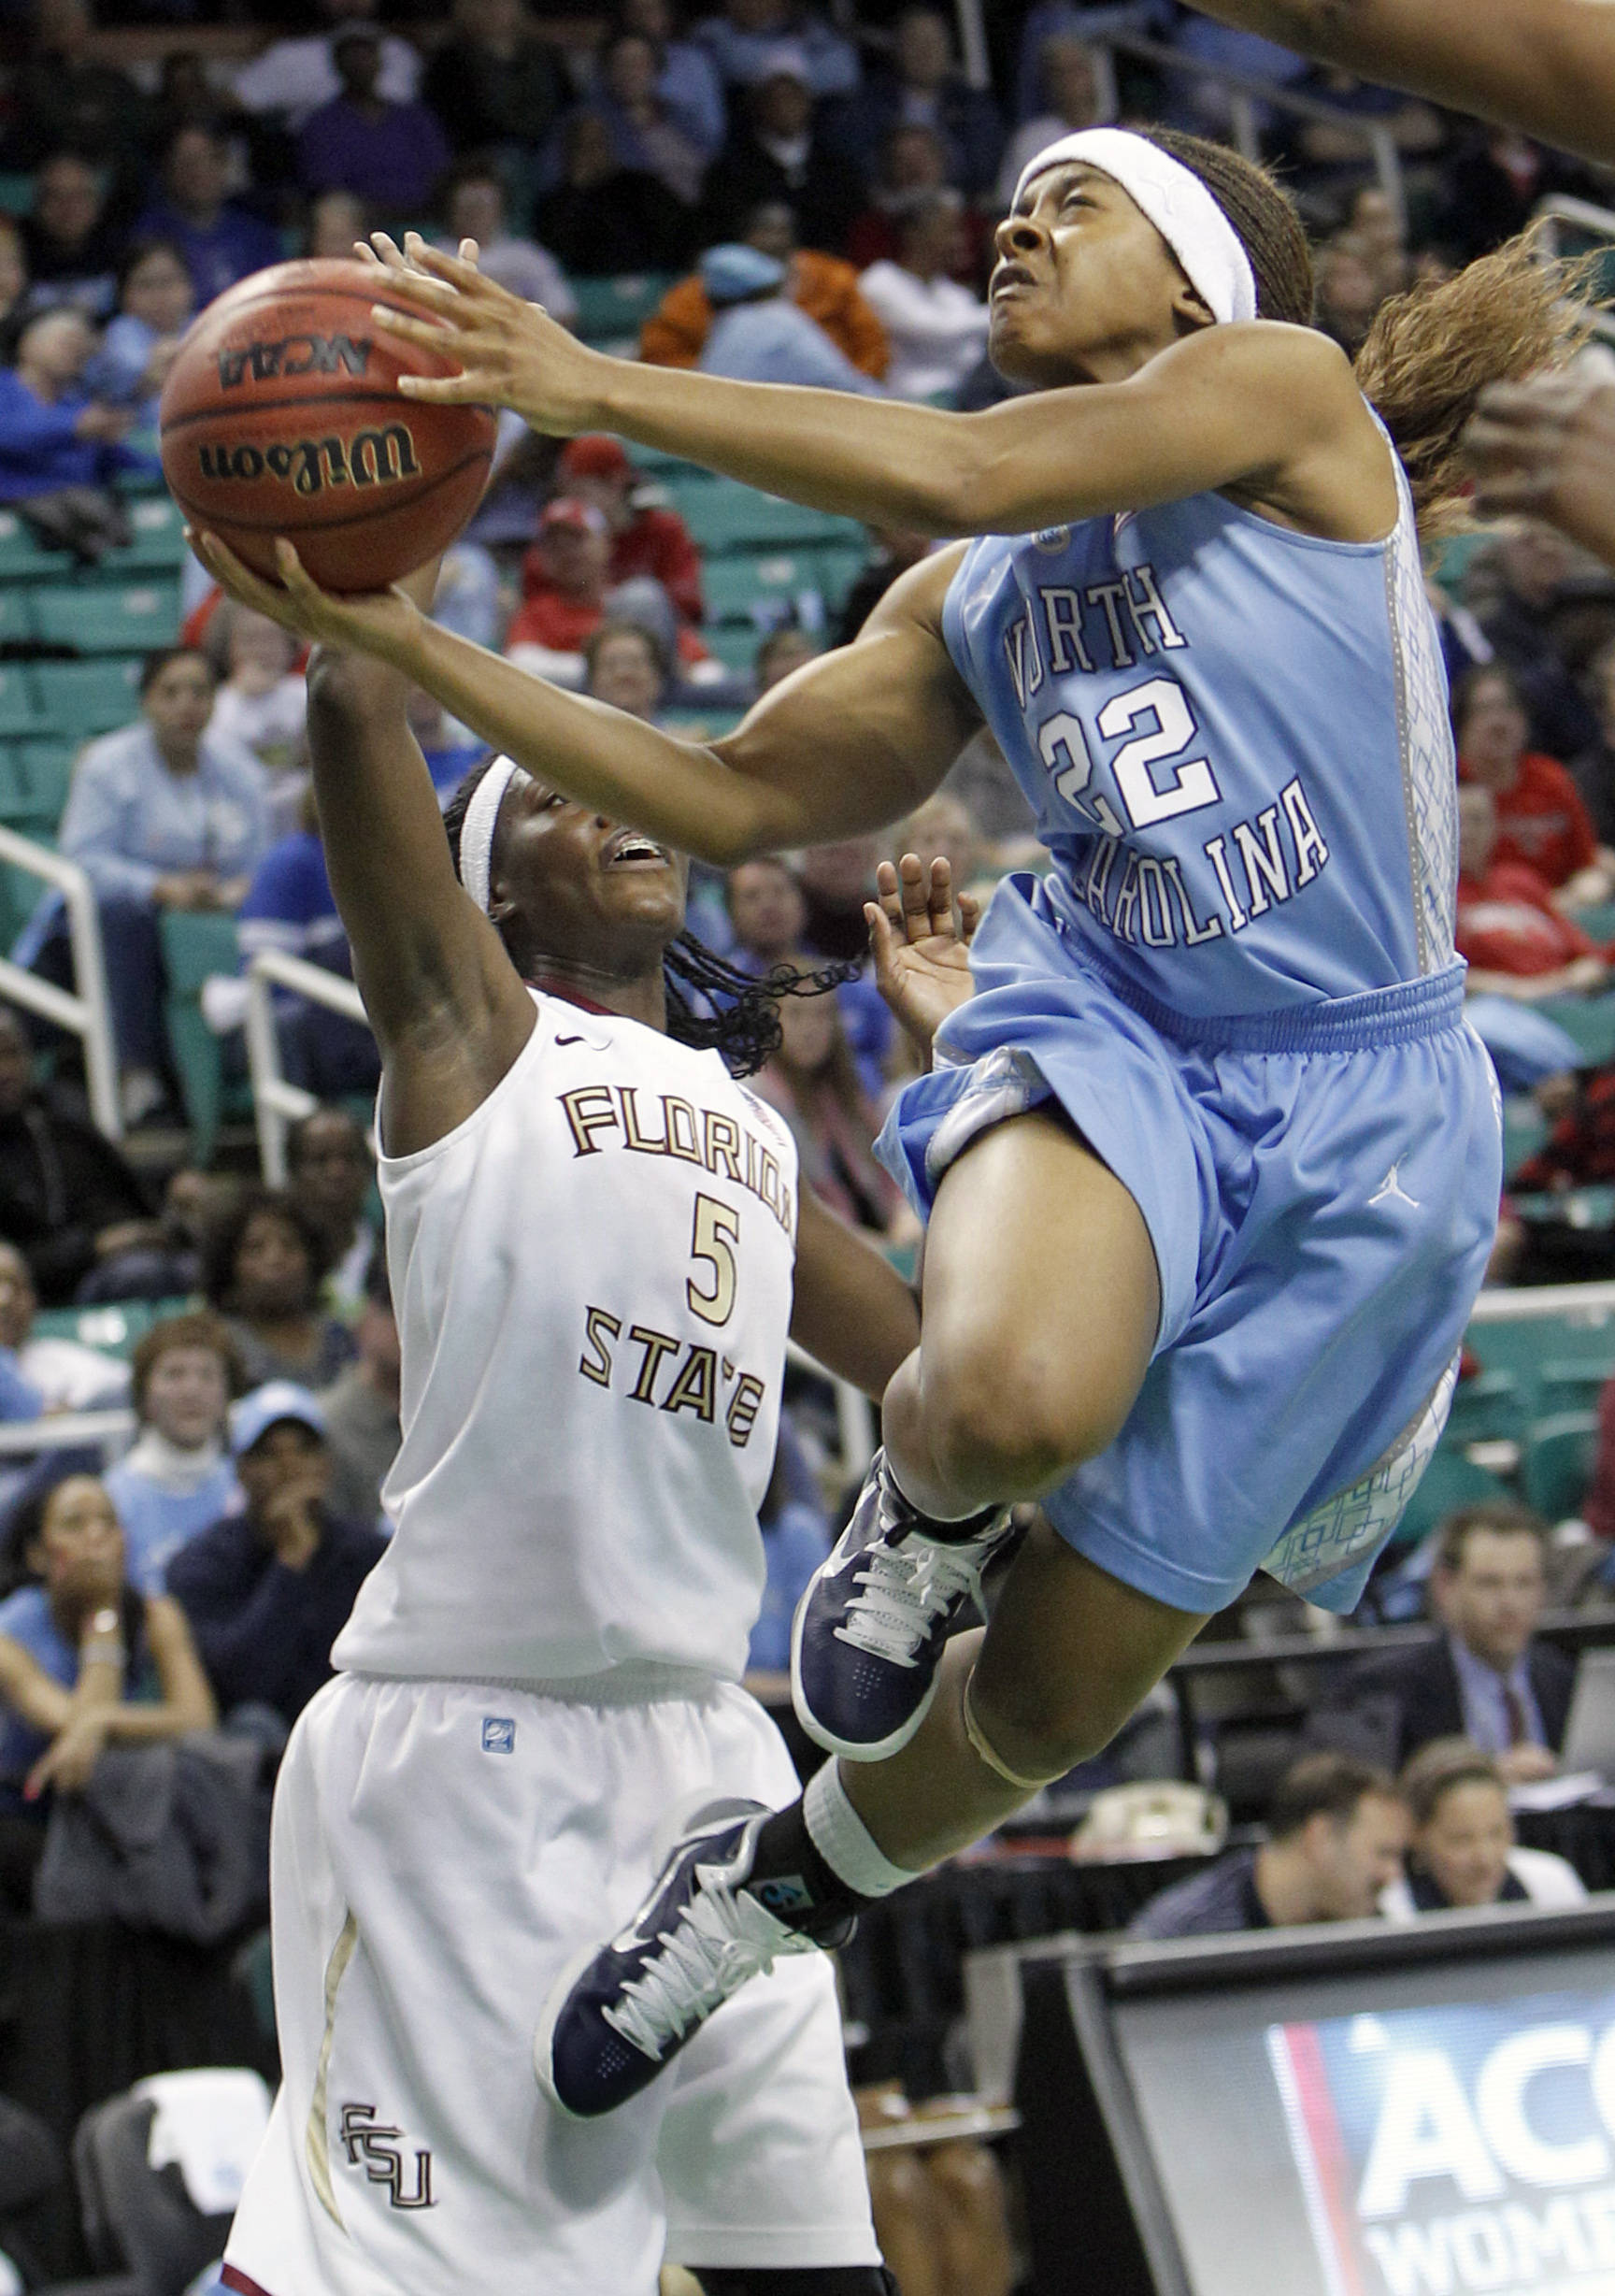 North Carolina's Cetera DeGraffenreid (22) drives past Florida State's Christian Hunnicutt in the second half of North Carolina's 78-65 win in an Atlantic Coast Conference women's basketball tournament game. (AP Photo/Chuck Burton)